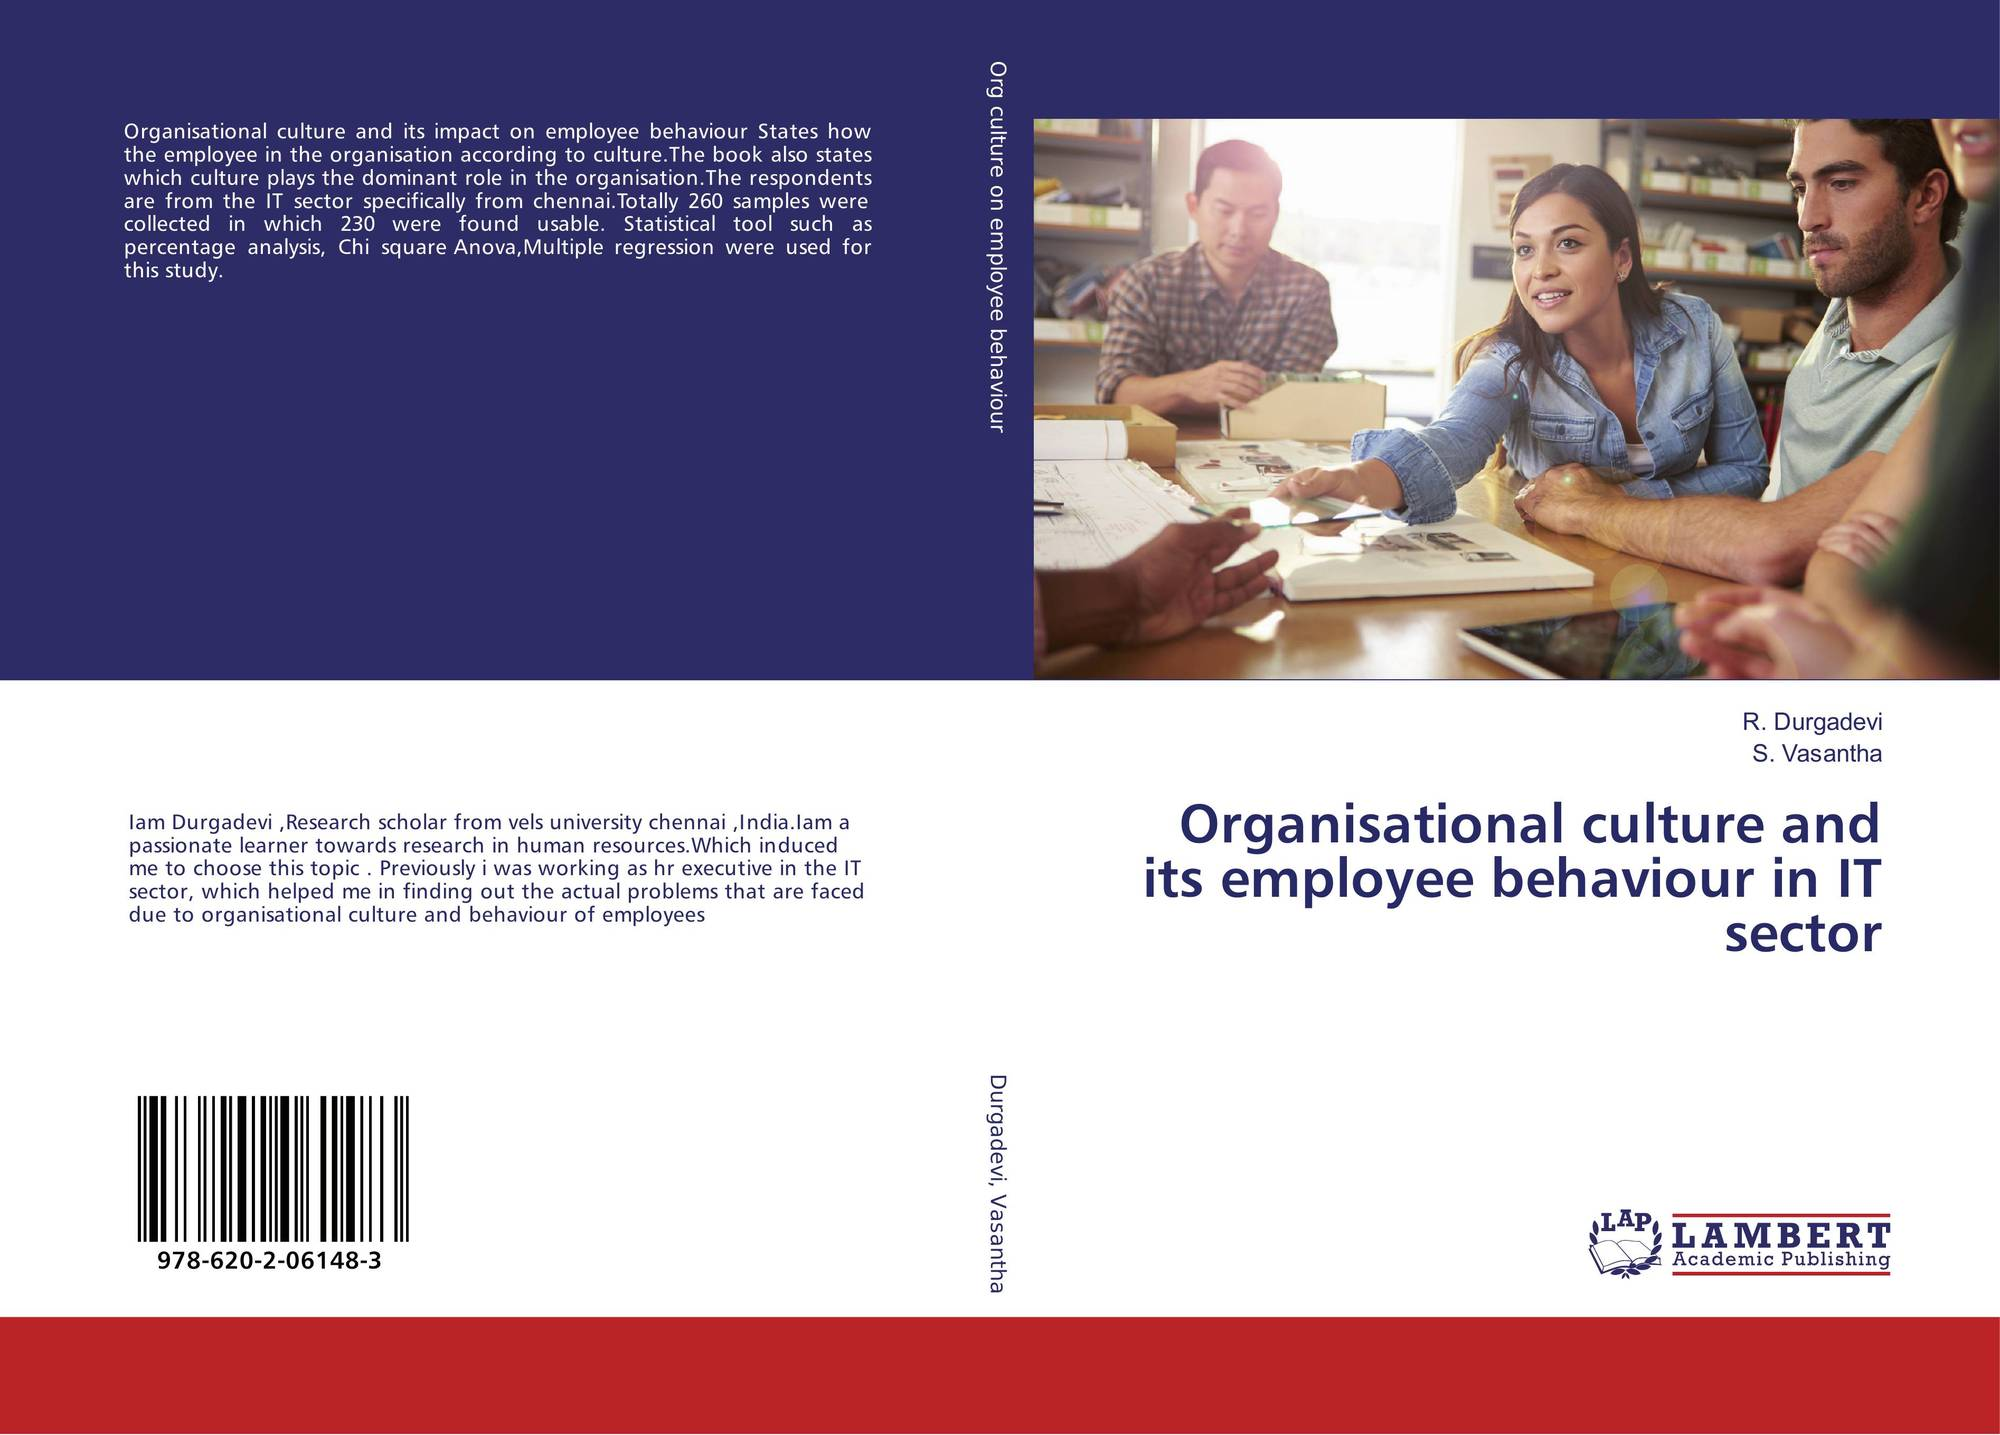 organizational behavior and its impact on society essay Organizational behavior, organizational factors it has a deep impact on organizational behavior - organizational behavior this essay answers.